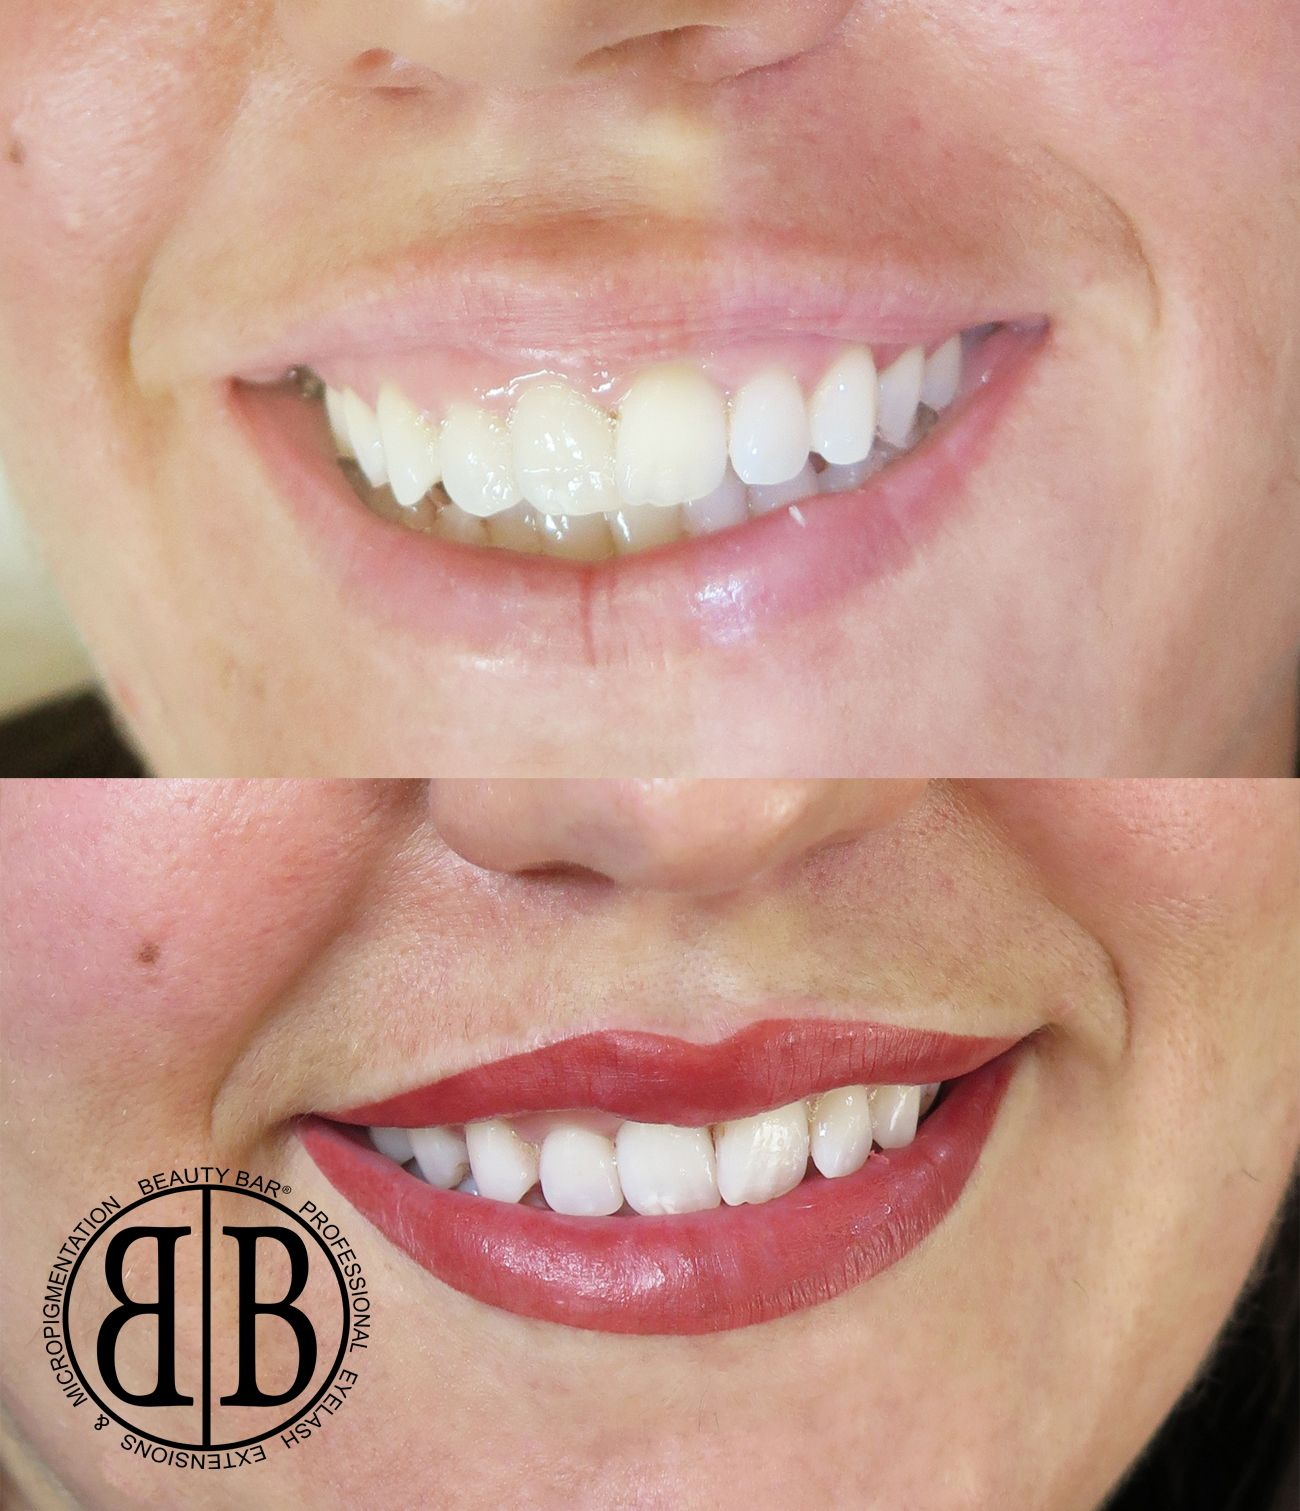 Permanent lips before and after , more info at www.beauty